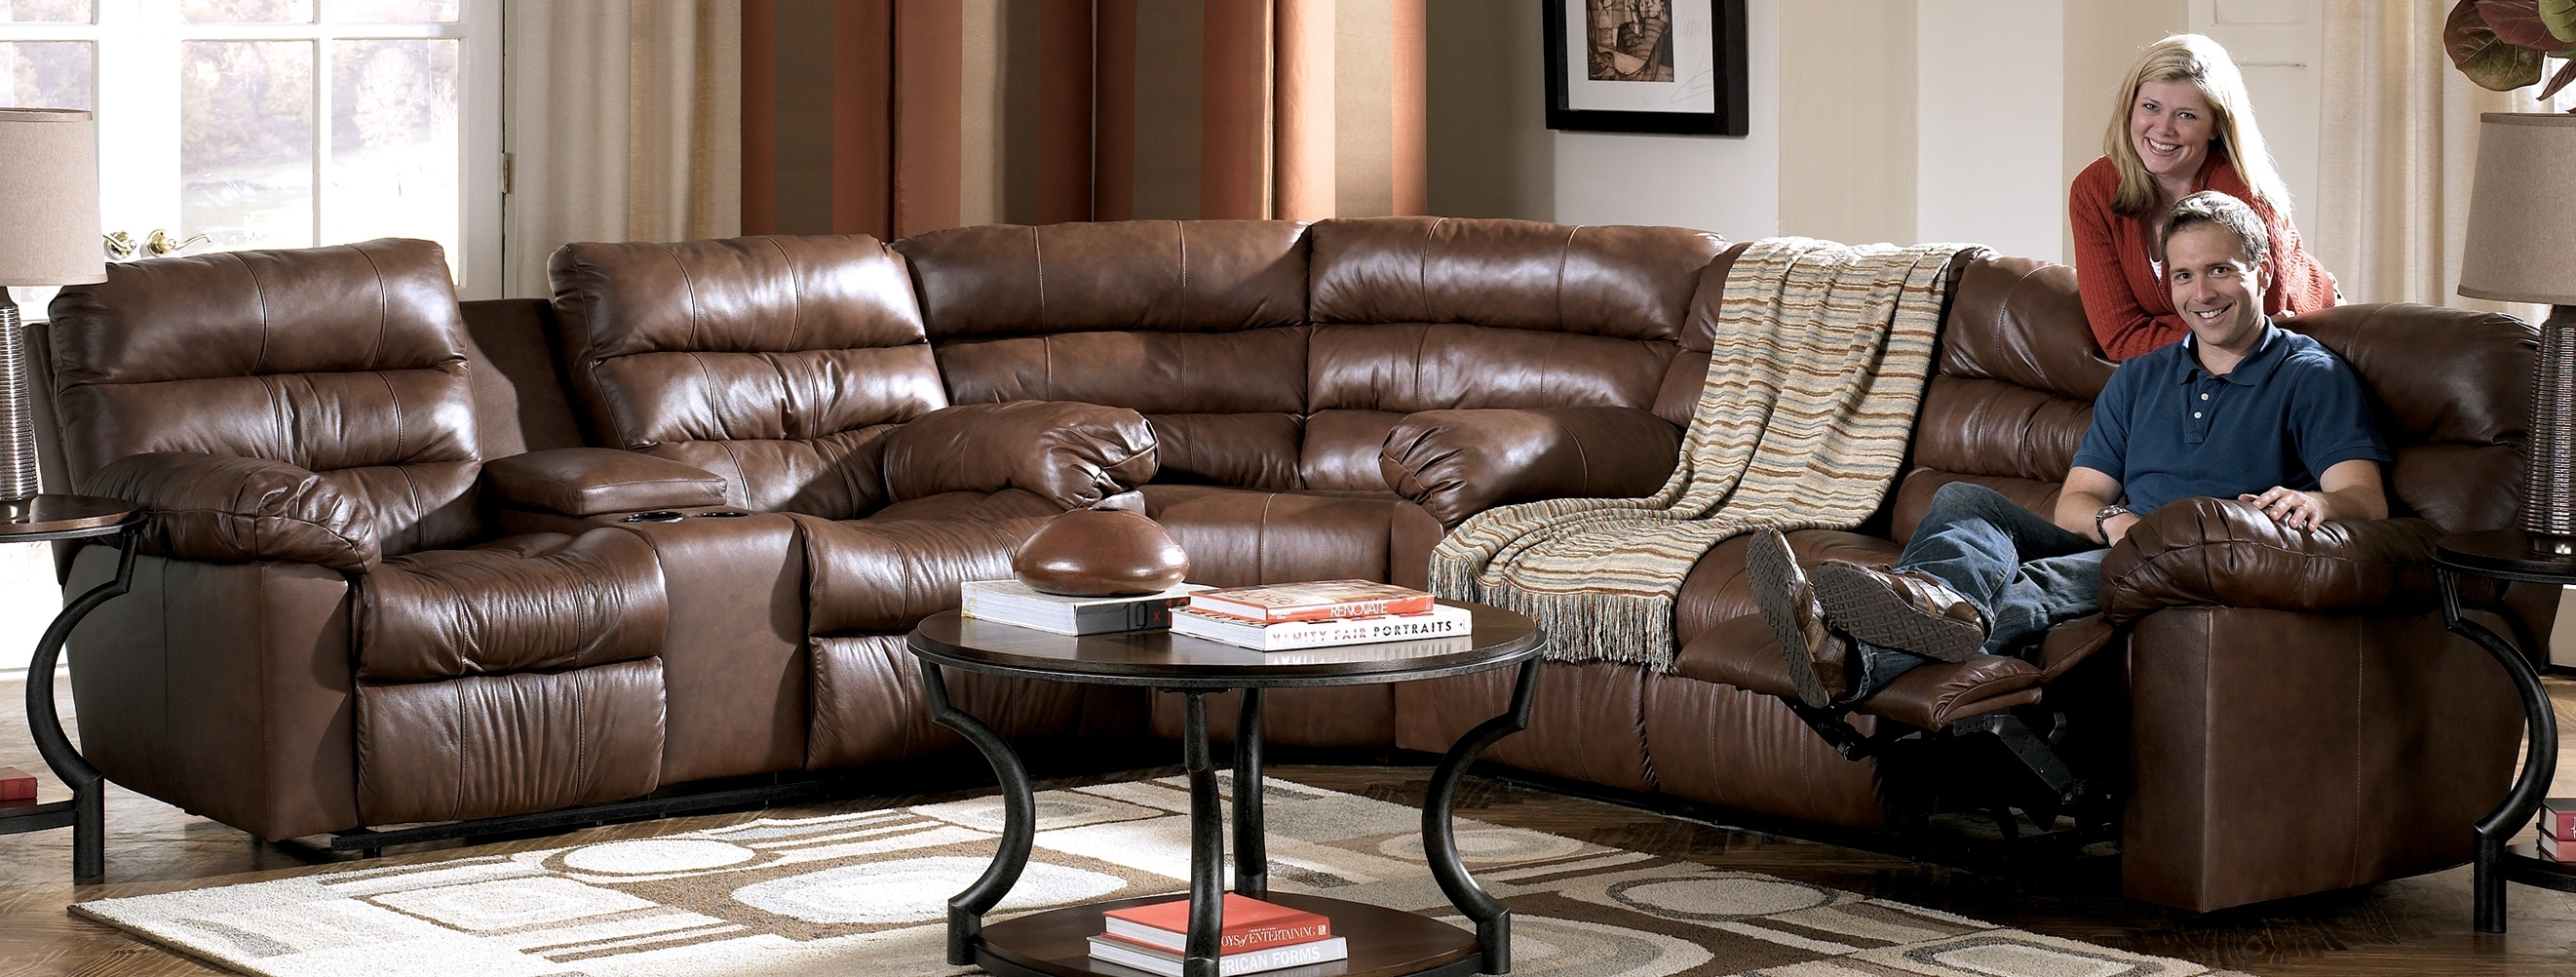 Reclining Leather Sectional Sofa With 4 Recliners And A Console throughout Sectional Sofas With Consoles (Image 5 of 10)